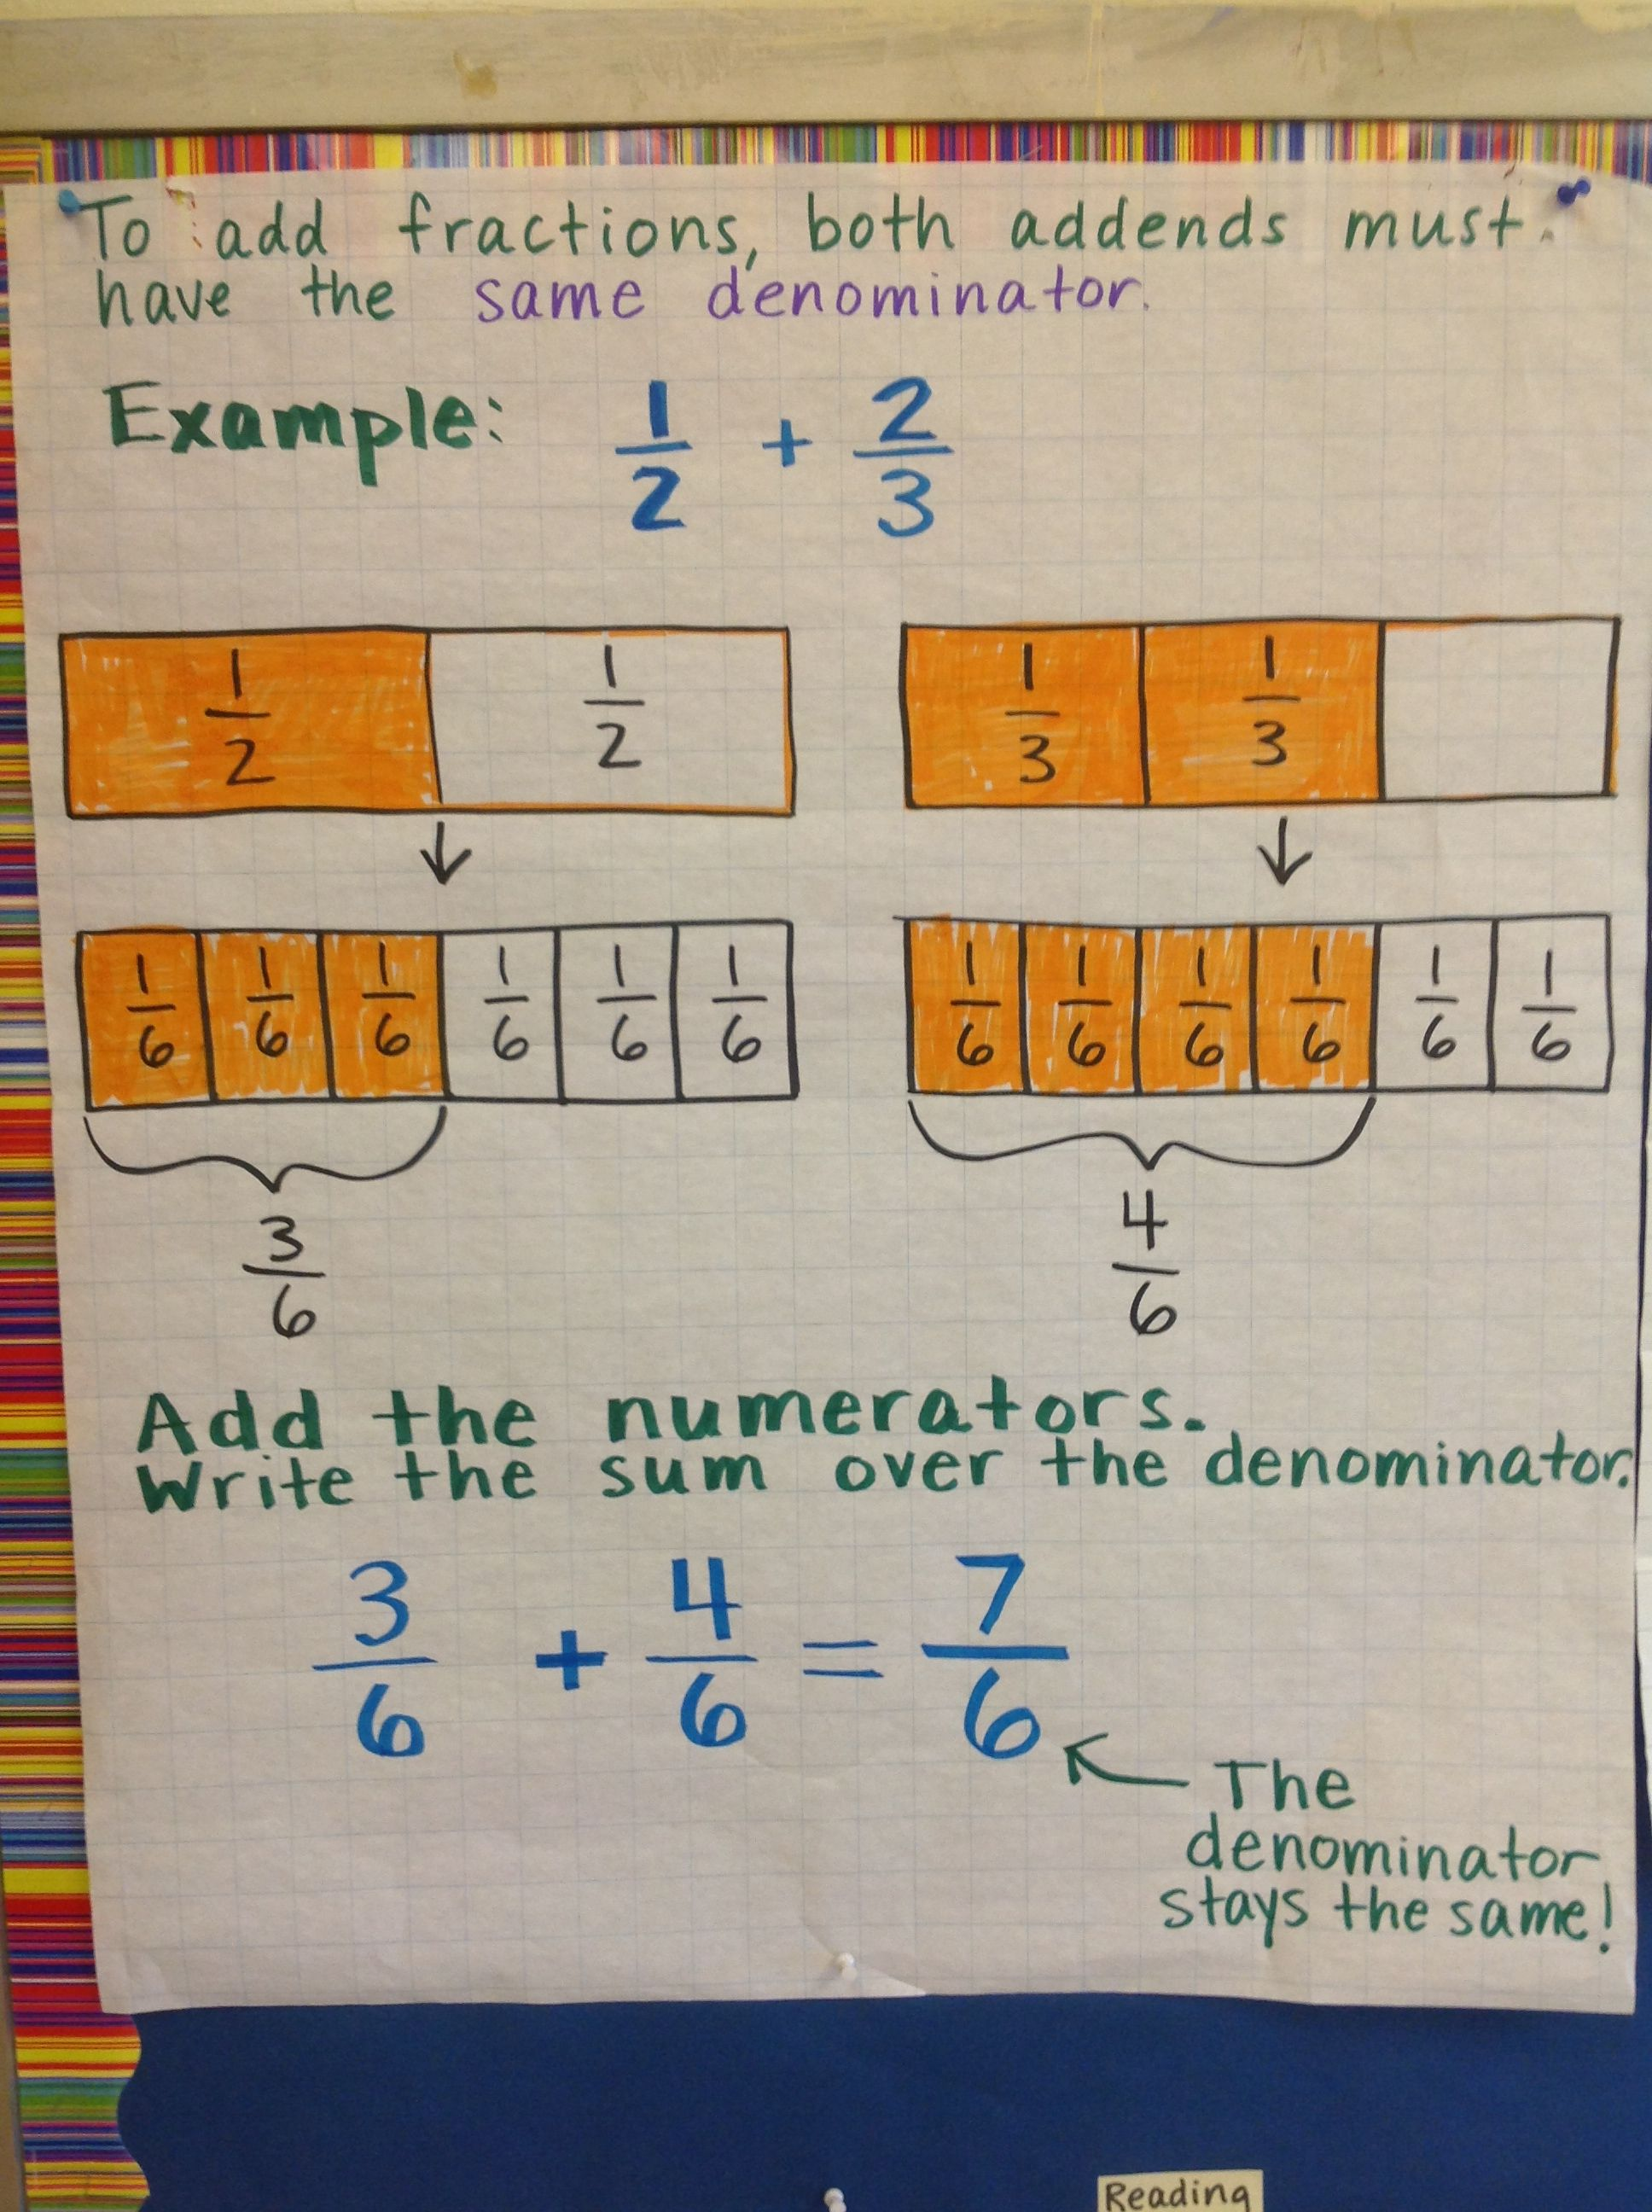 Fraction Strips To Show Common Denominator